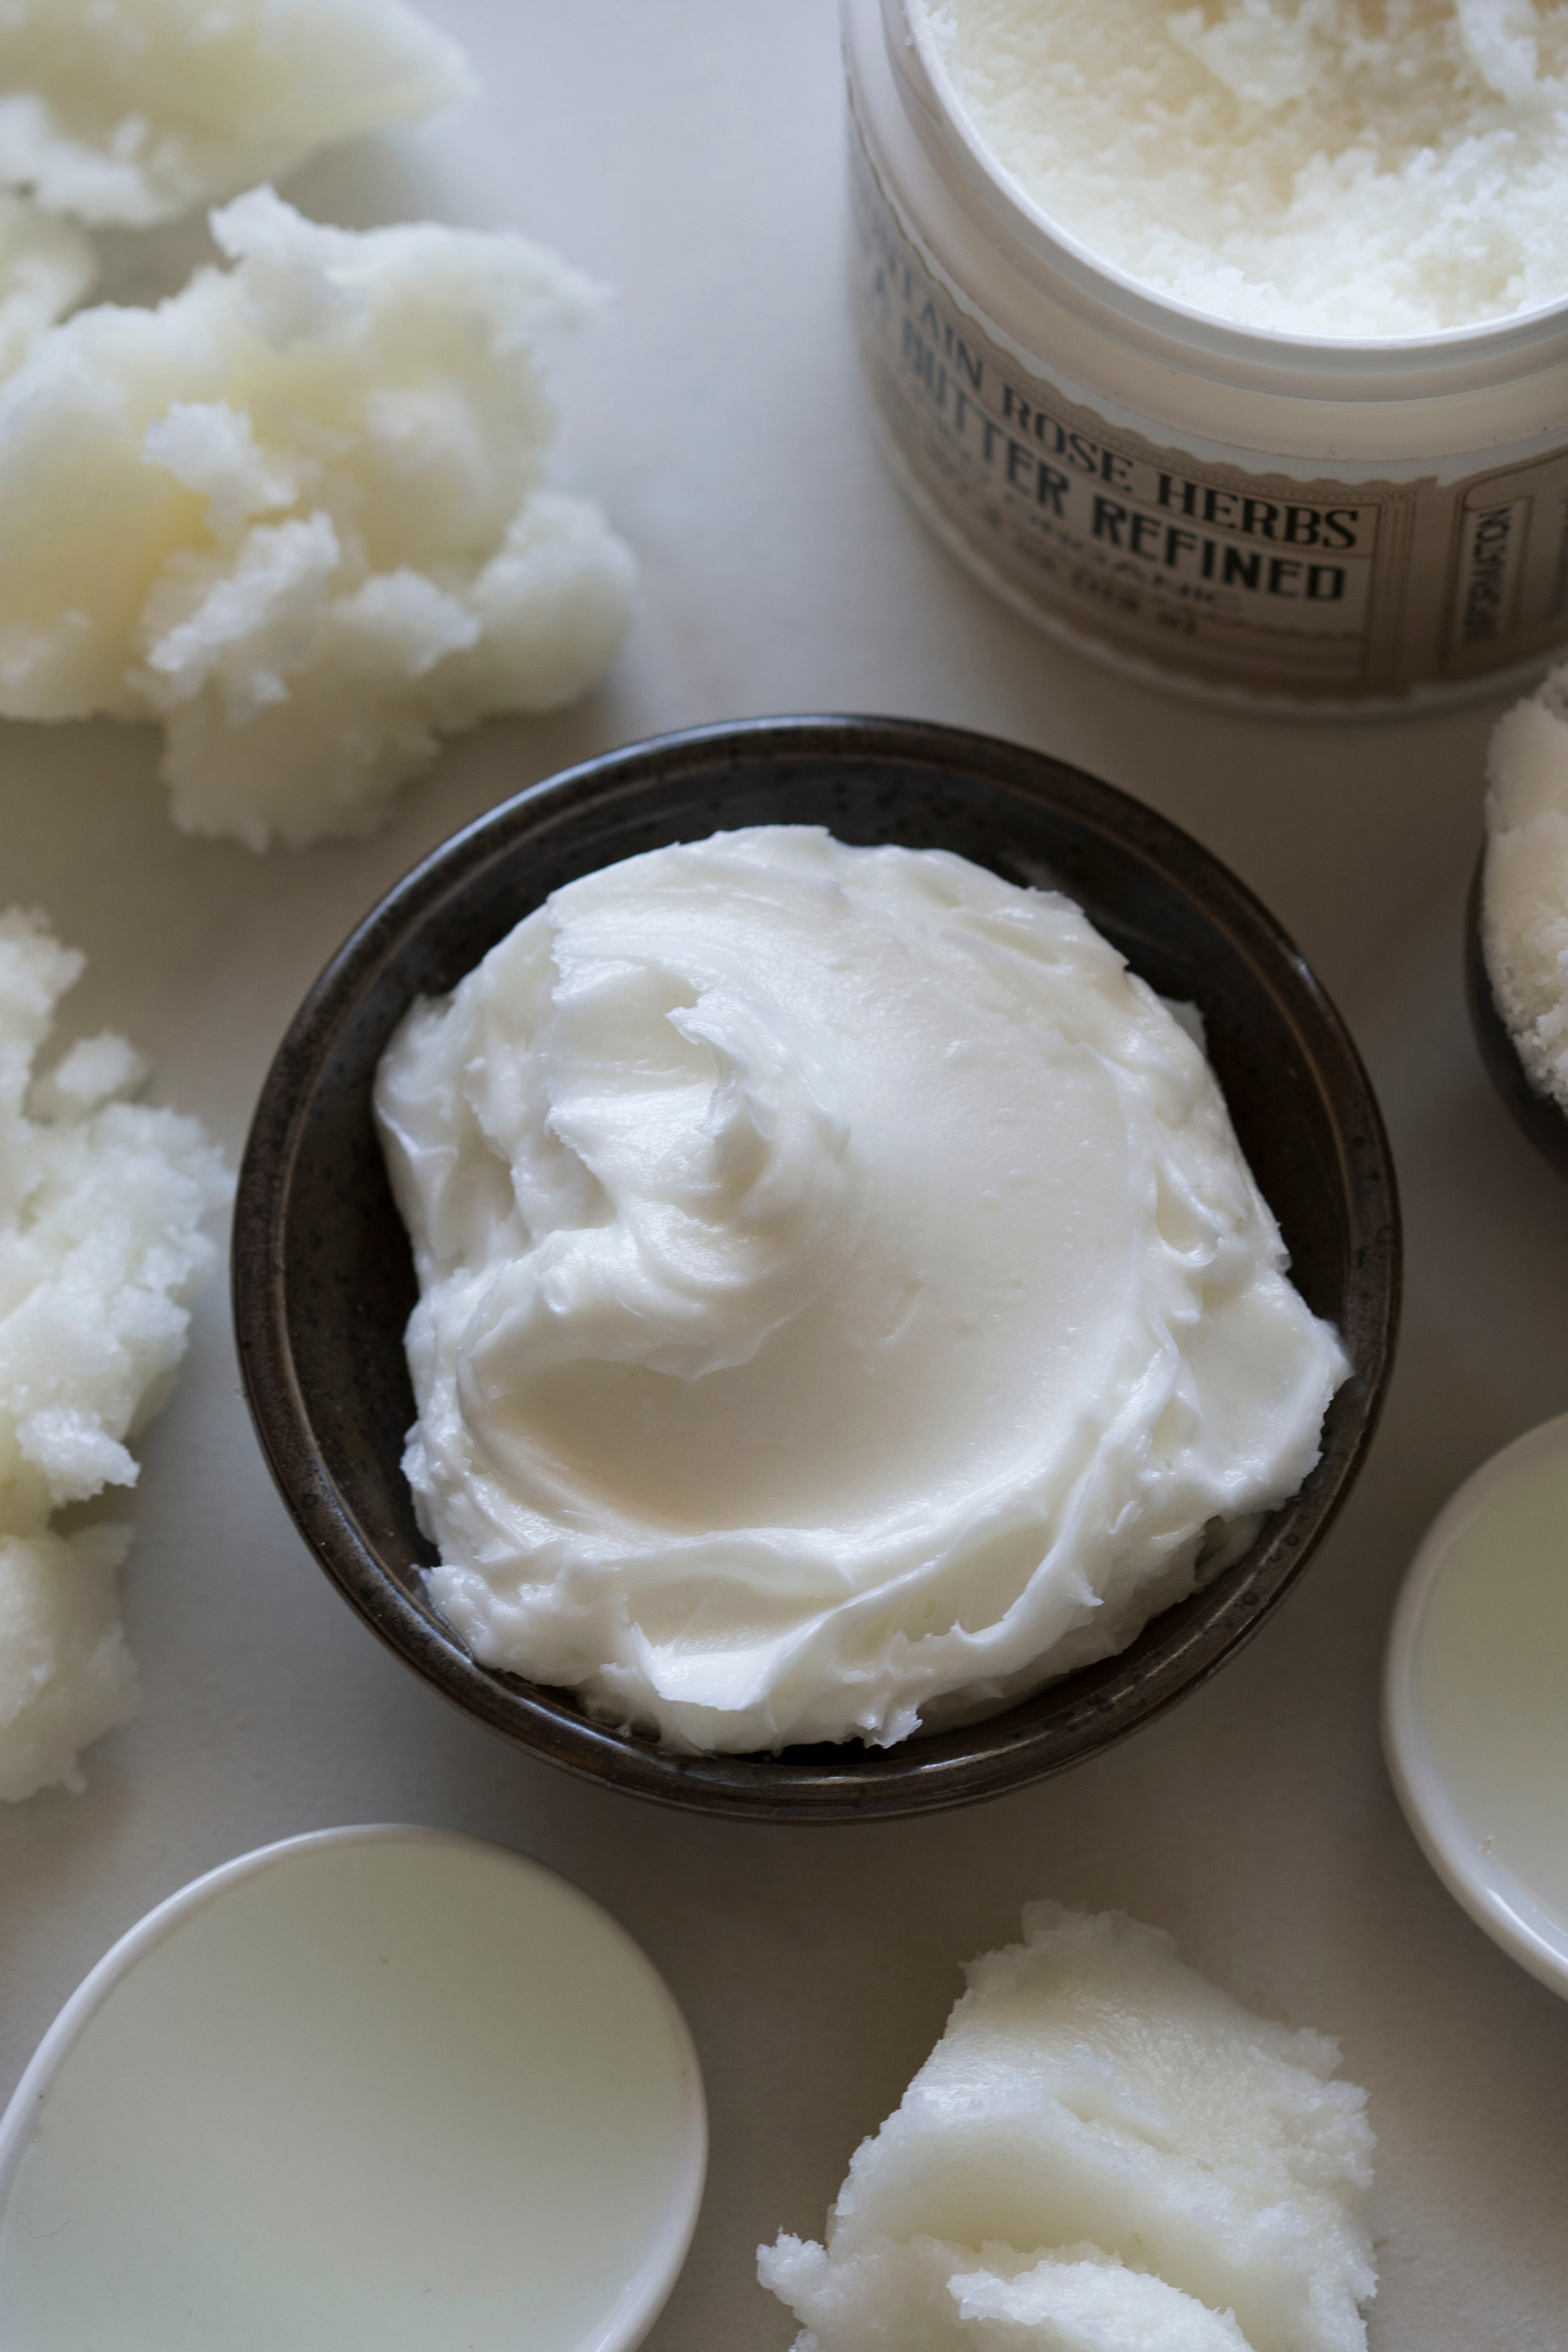 Bowl of homemade whipped shaving cream on counter with organic butters and ingredients